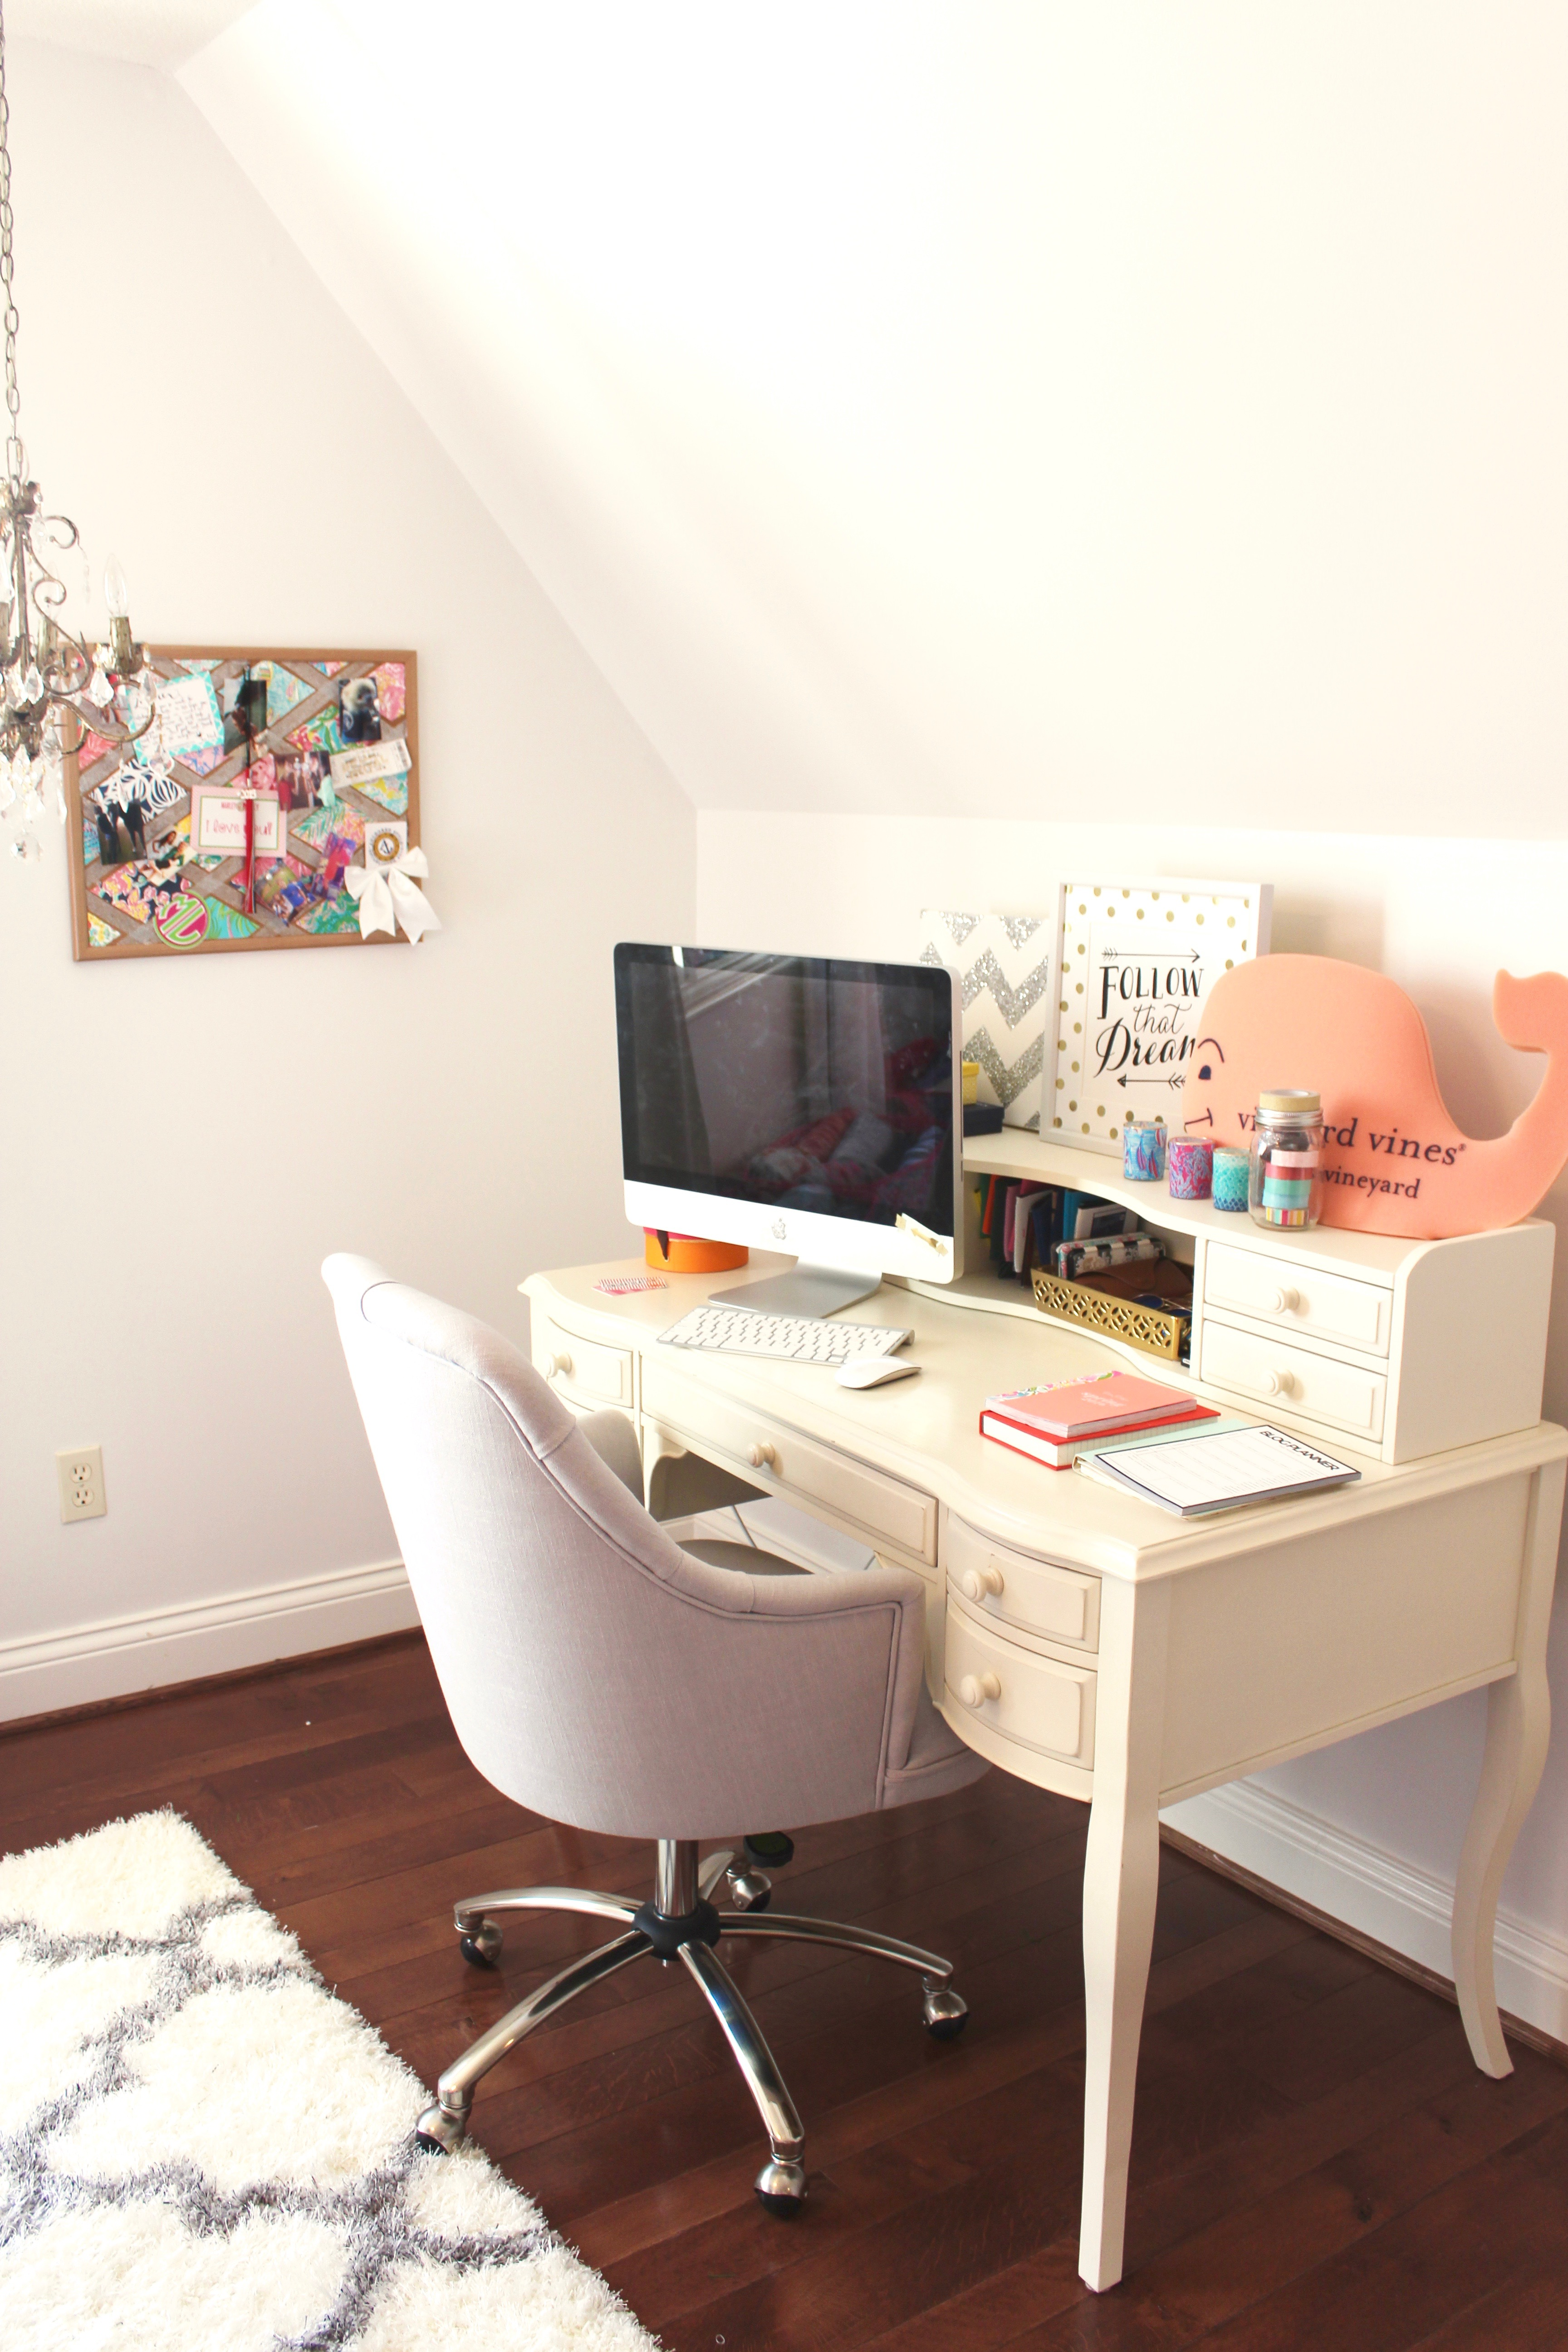 My Room Tour  VIDEO Lilly Pulitzer Inspired Room  Daily Dose of Charm